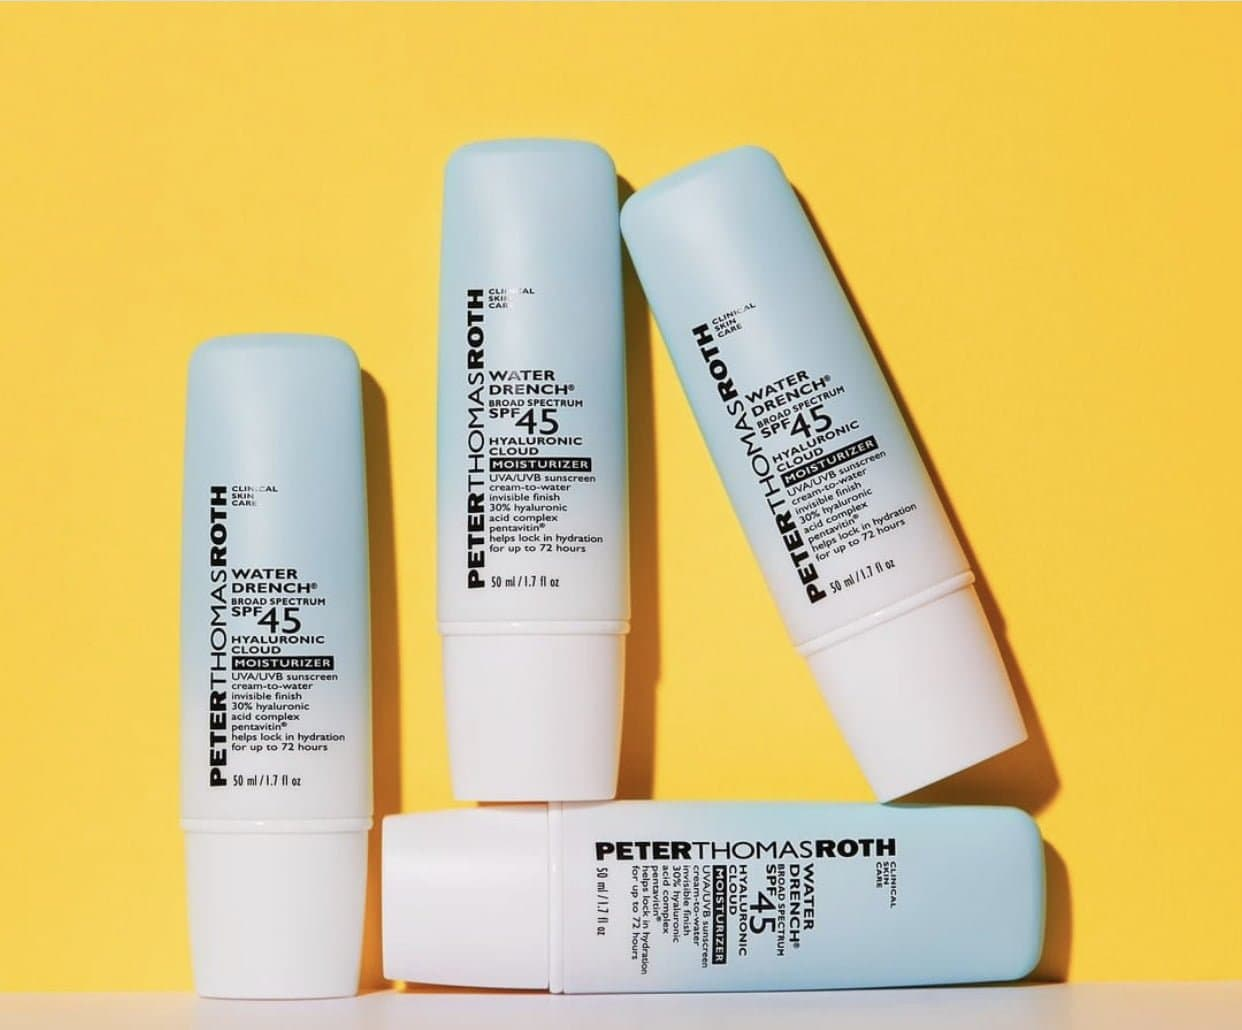 Peter Thomas Roth Water Drench Hyaluronic Cloud Moisturizer